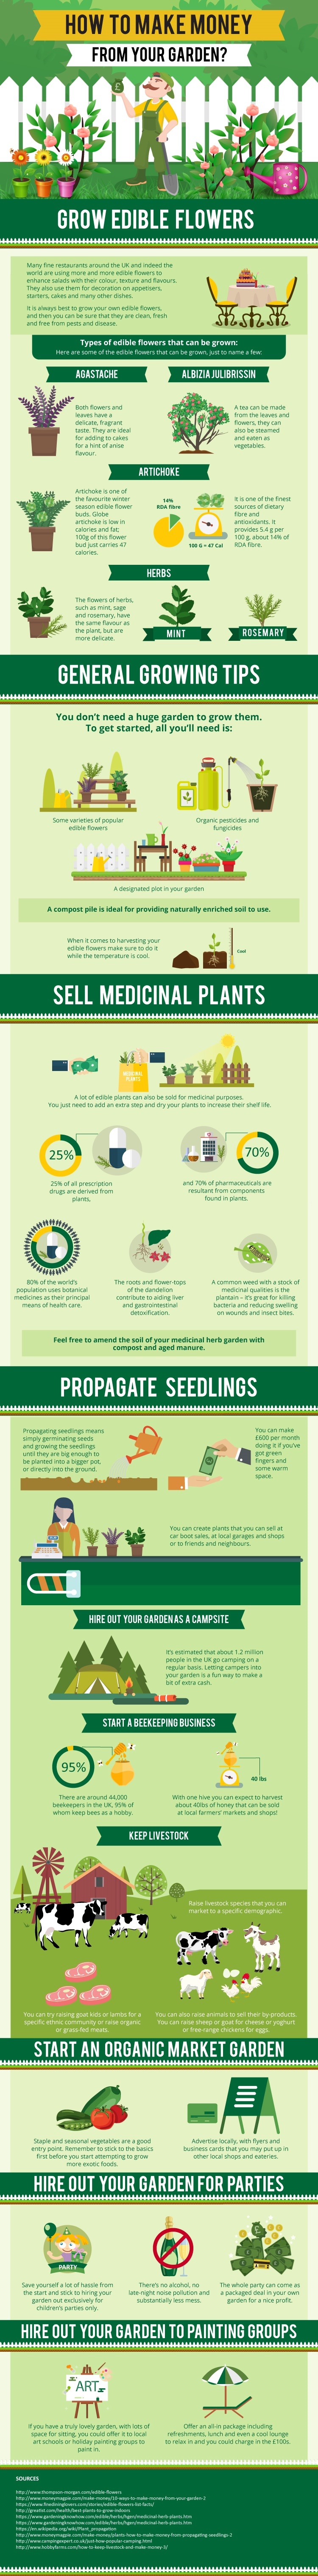 How to make money from your garden - Infographic